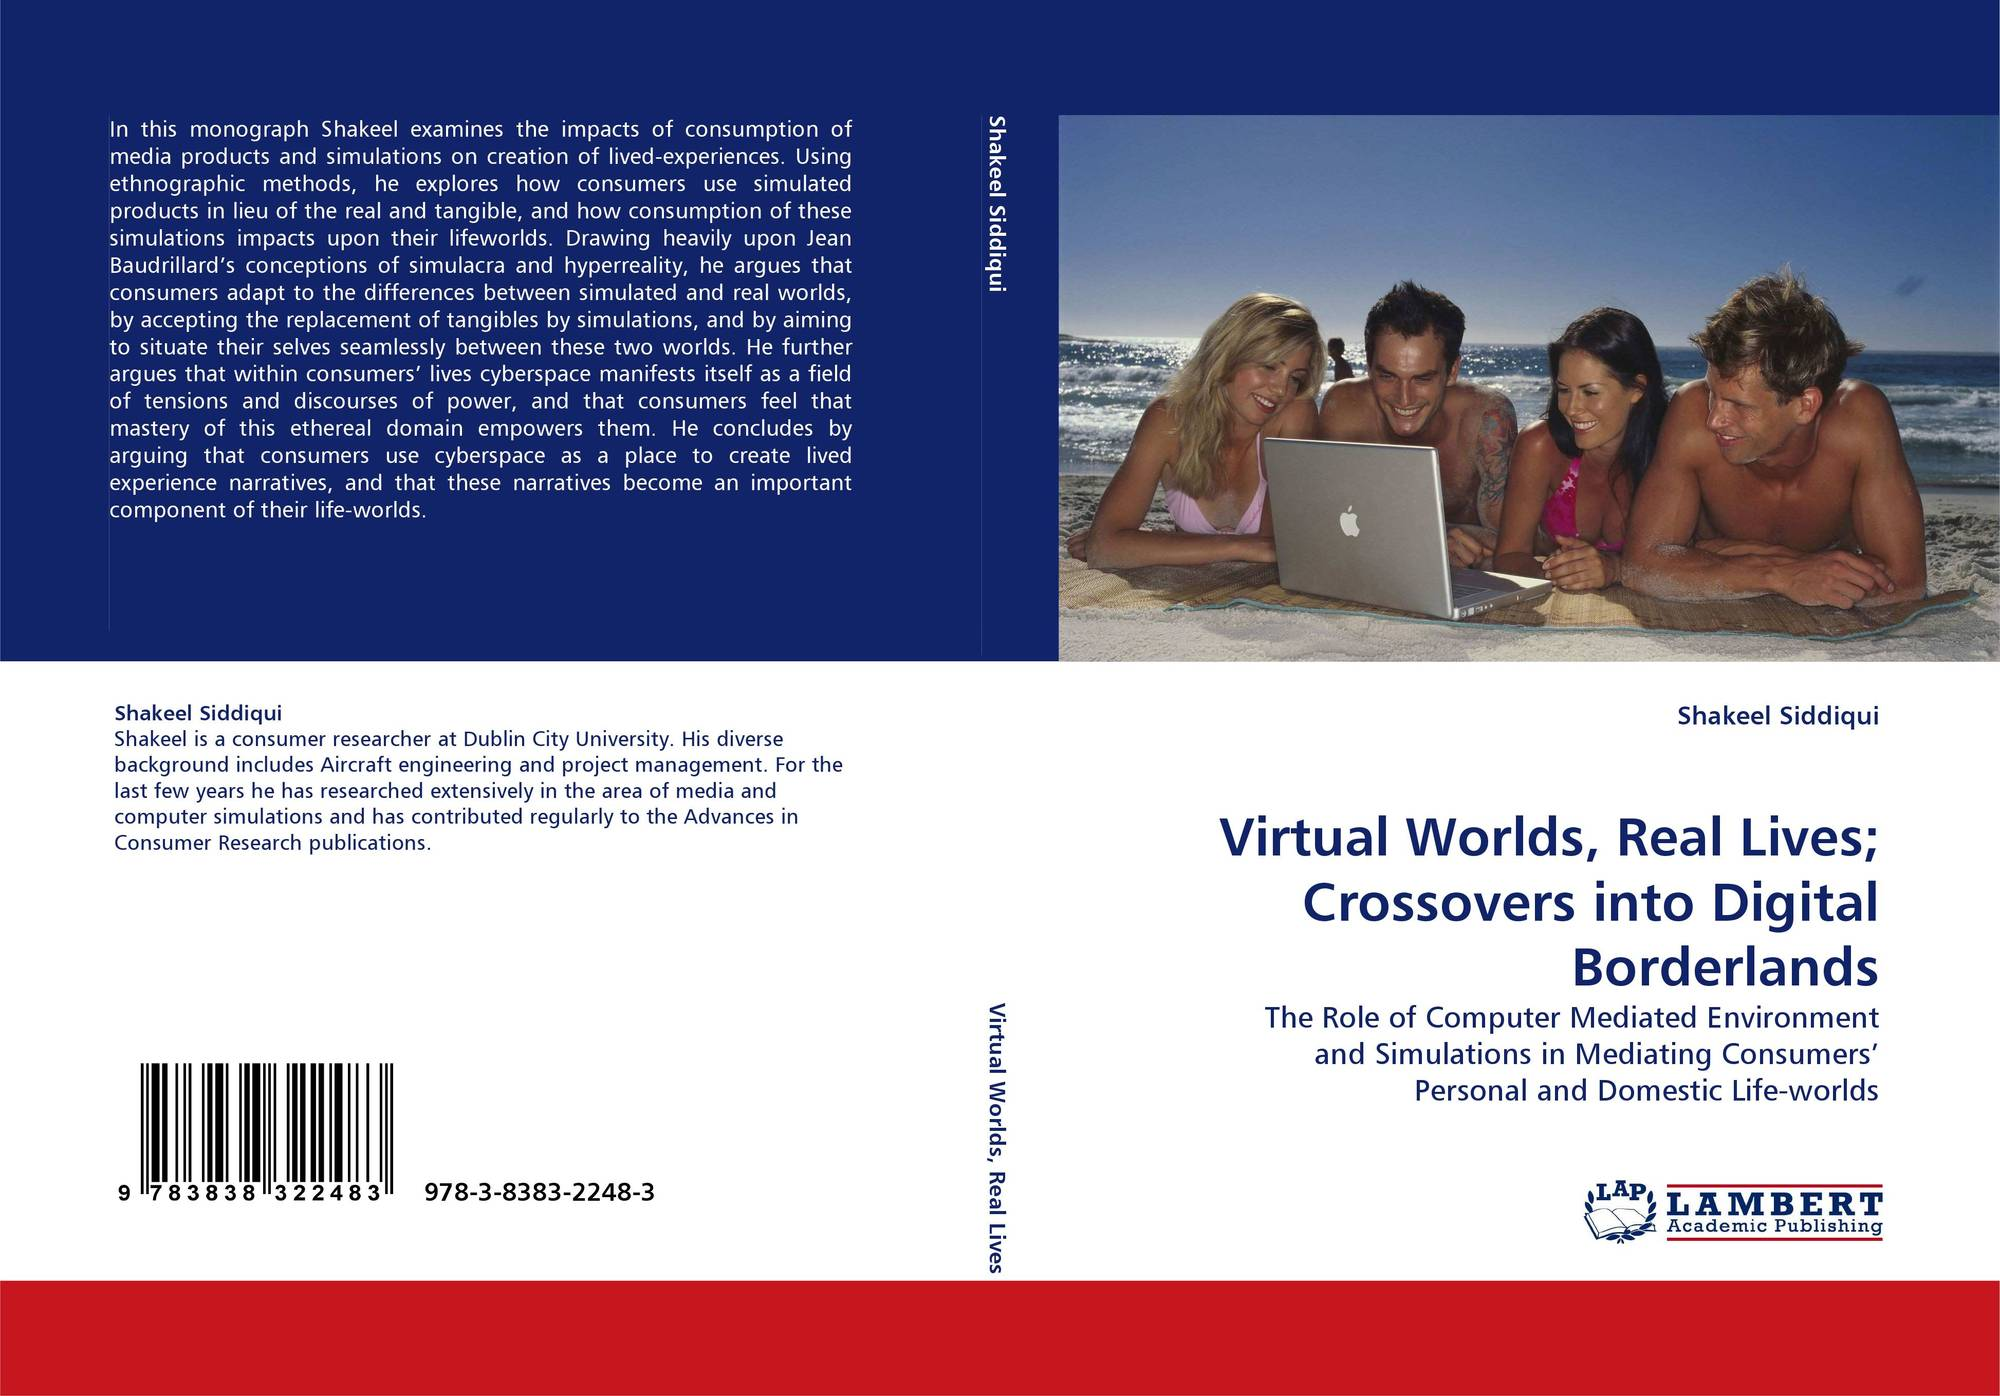 living digitally embodiment in virtual worlds